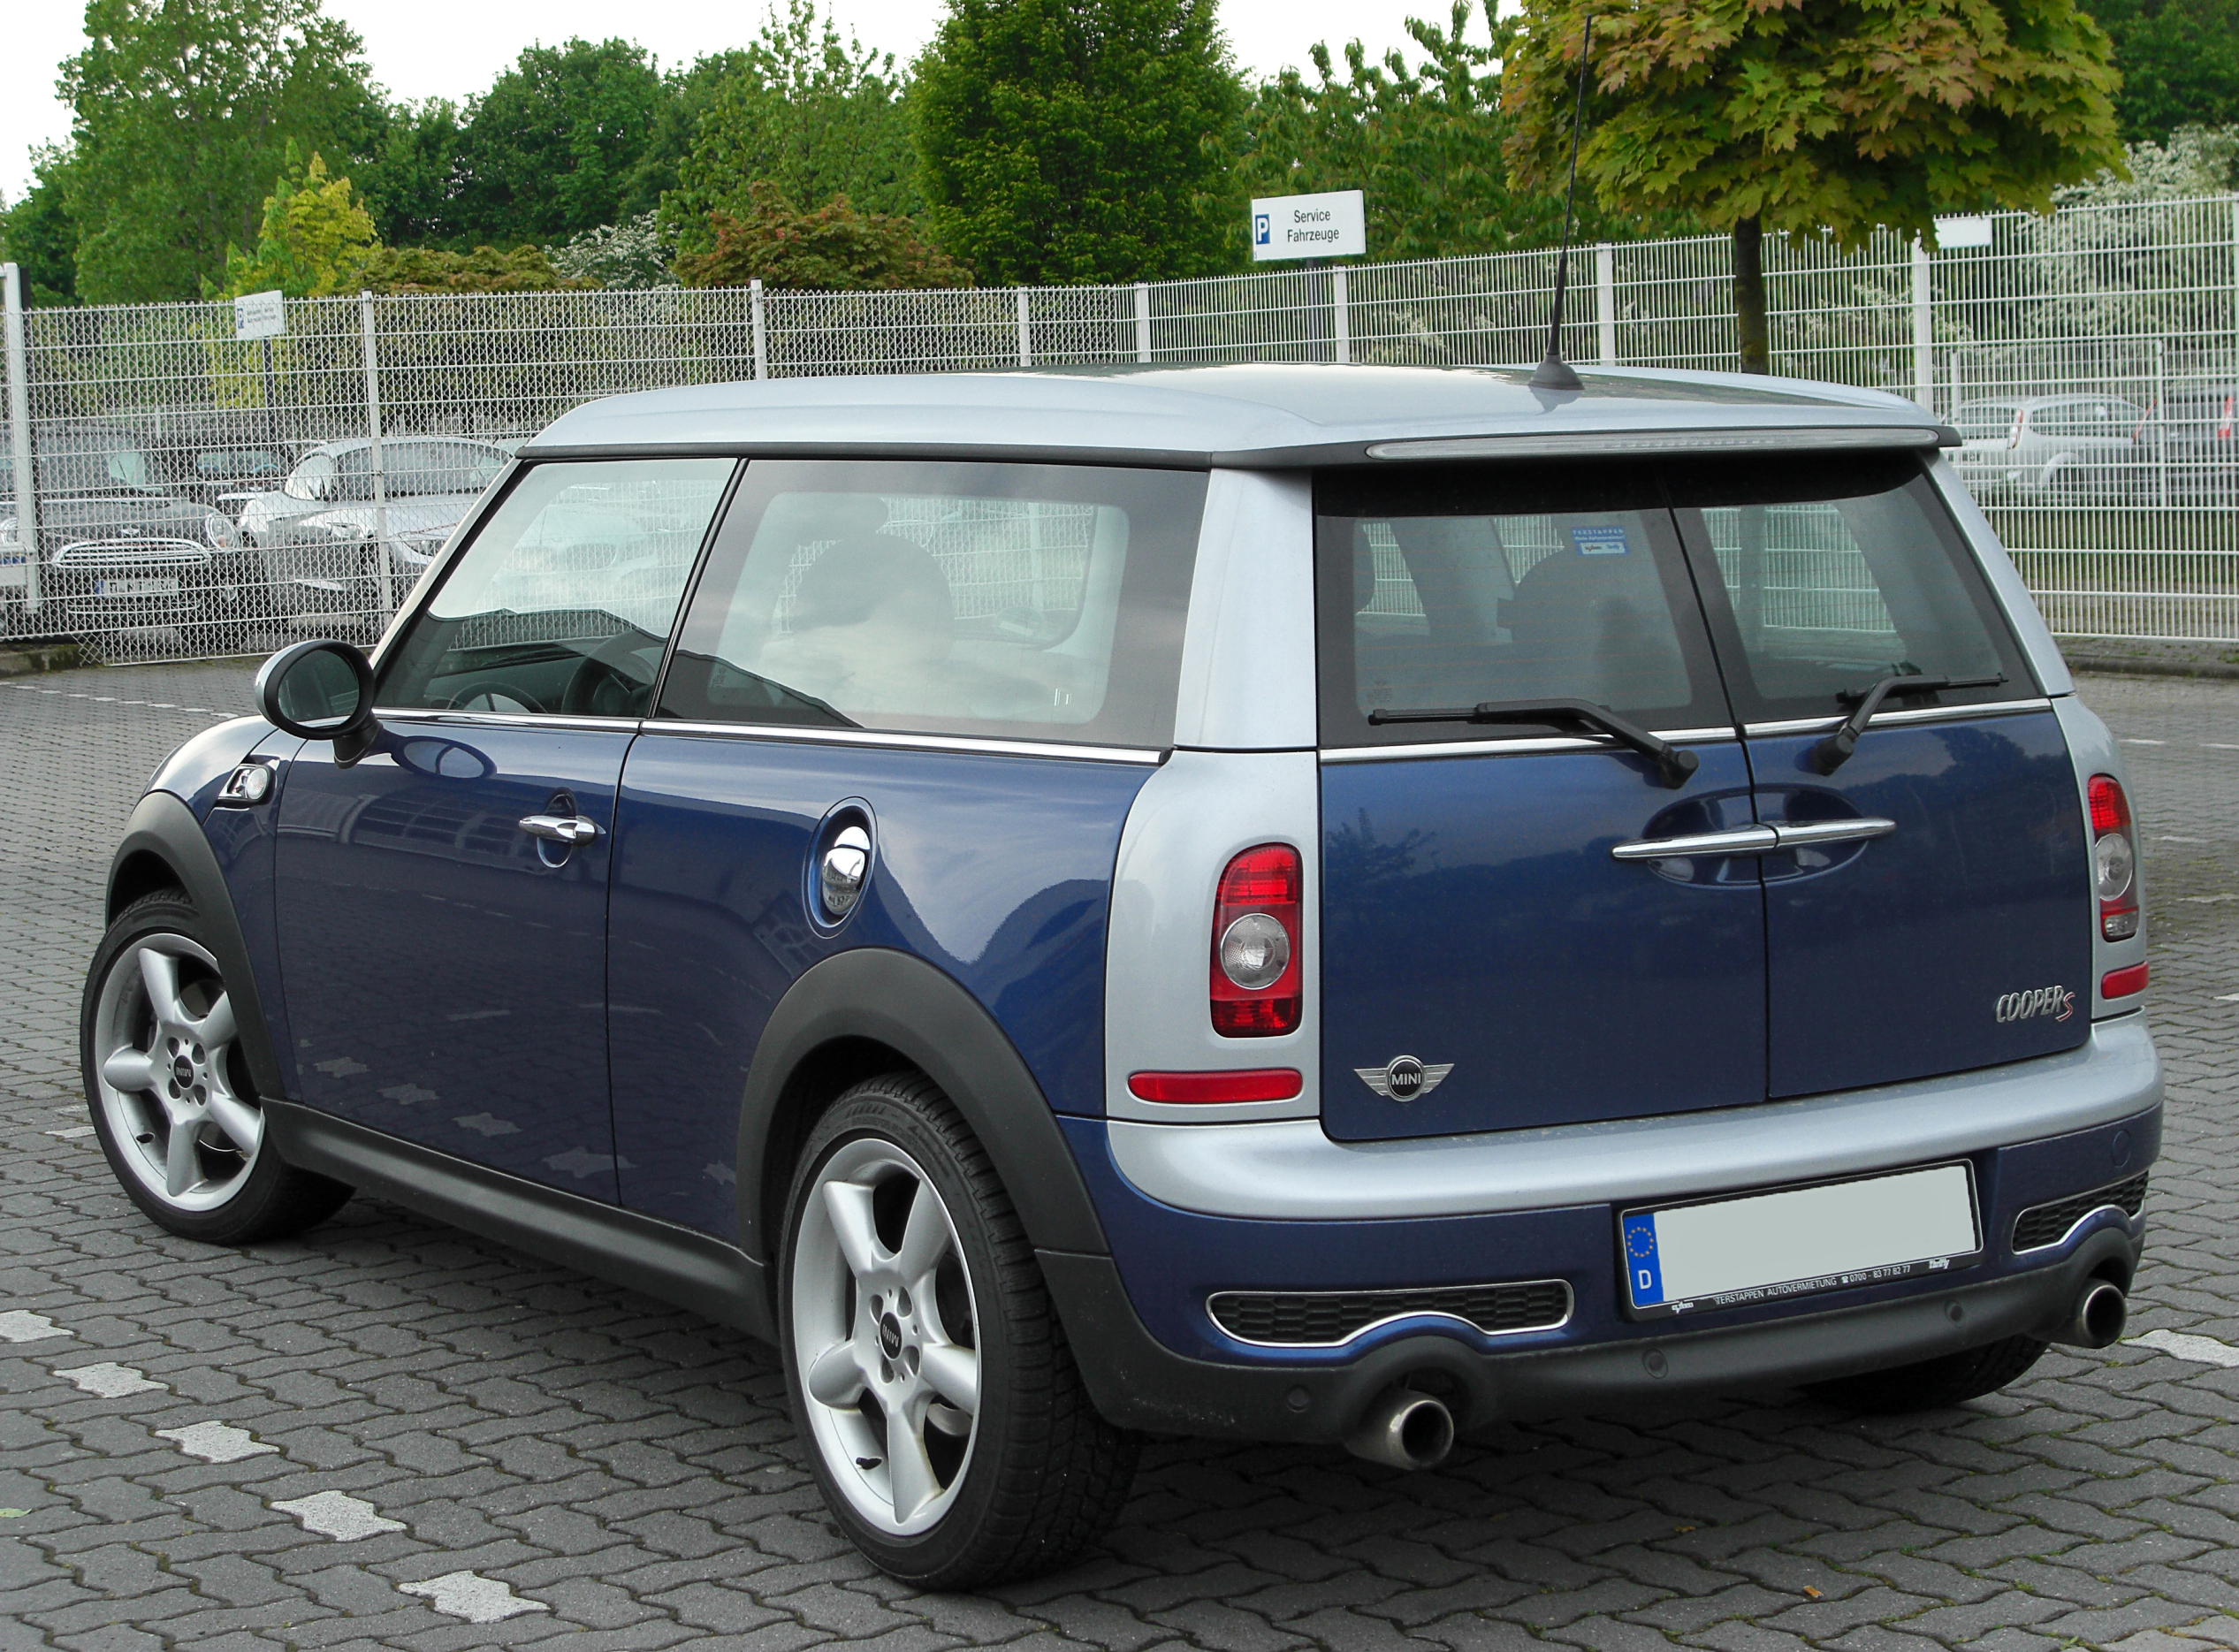 datei mini cooper s clubman facelift rear wikipedia. Black Bedroom Furniture Sets. Home Design Ideas